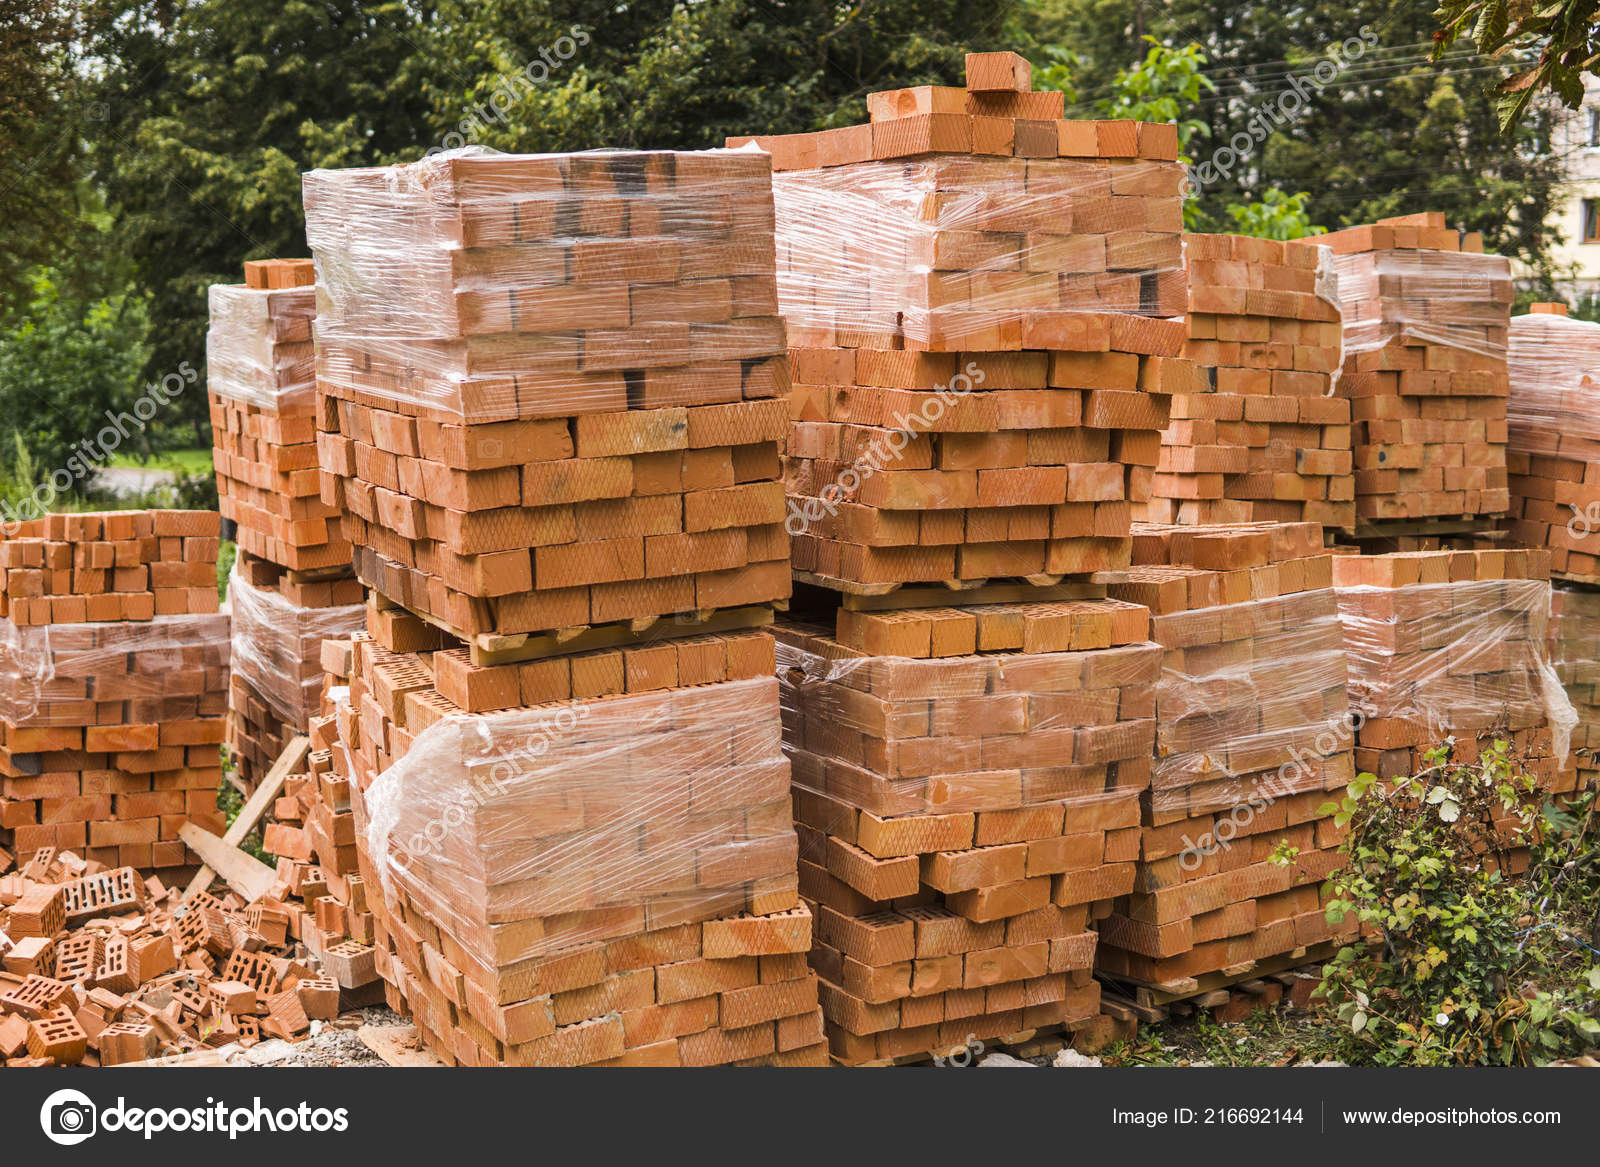 Stack Of Red Brick For Construction Common Quality Building Bricks Stacked Ready For Use Stock Photo C Volodymyrshtun 216692144